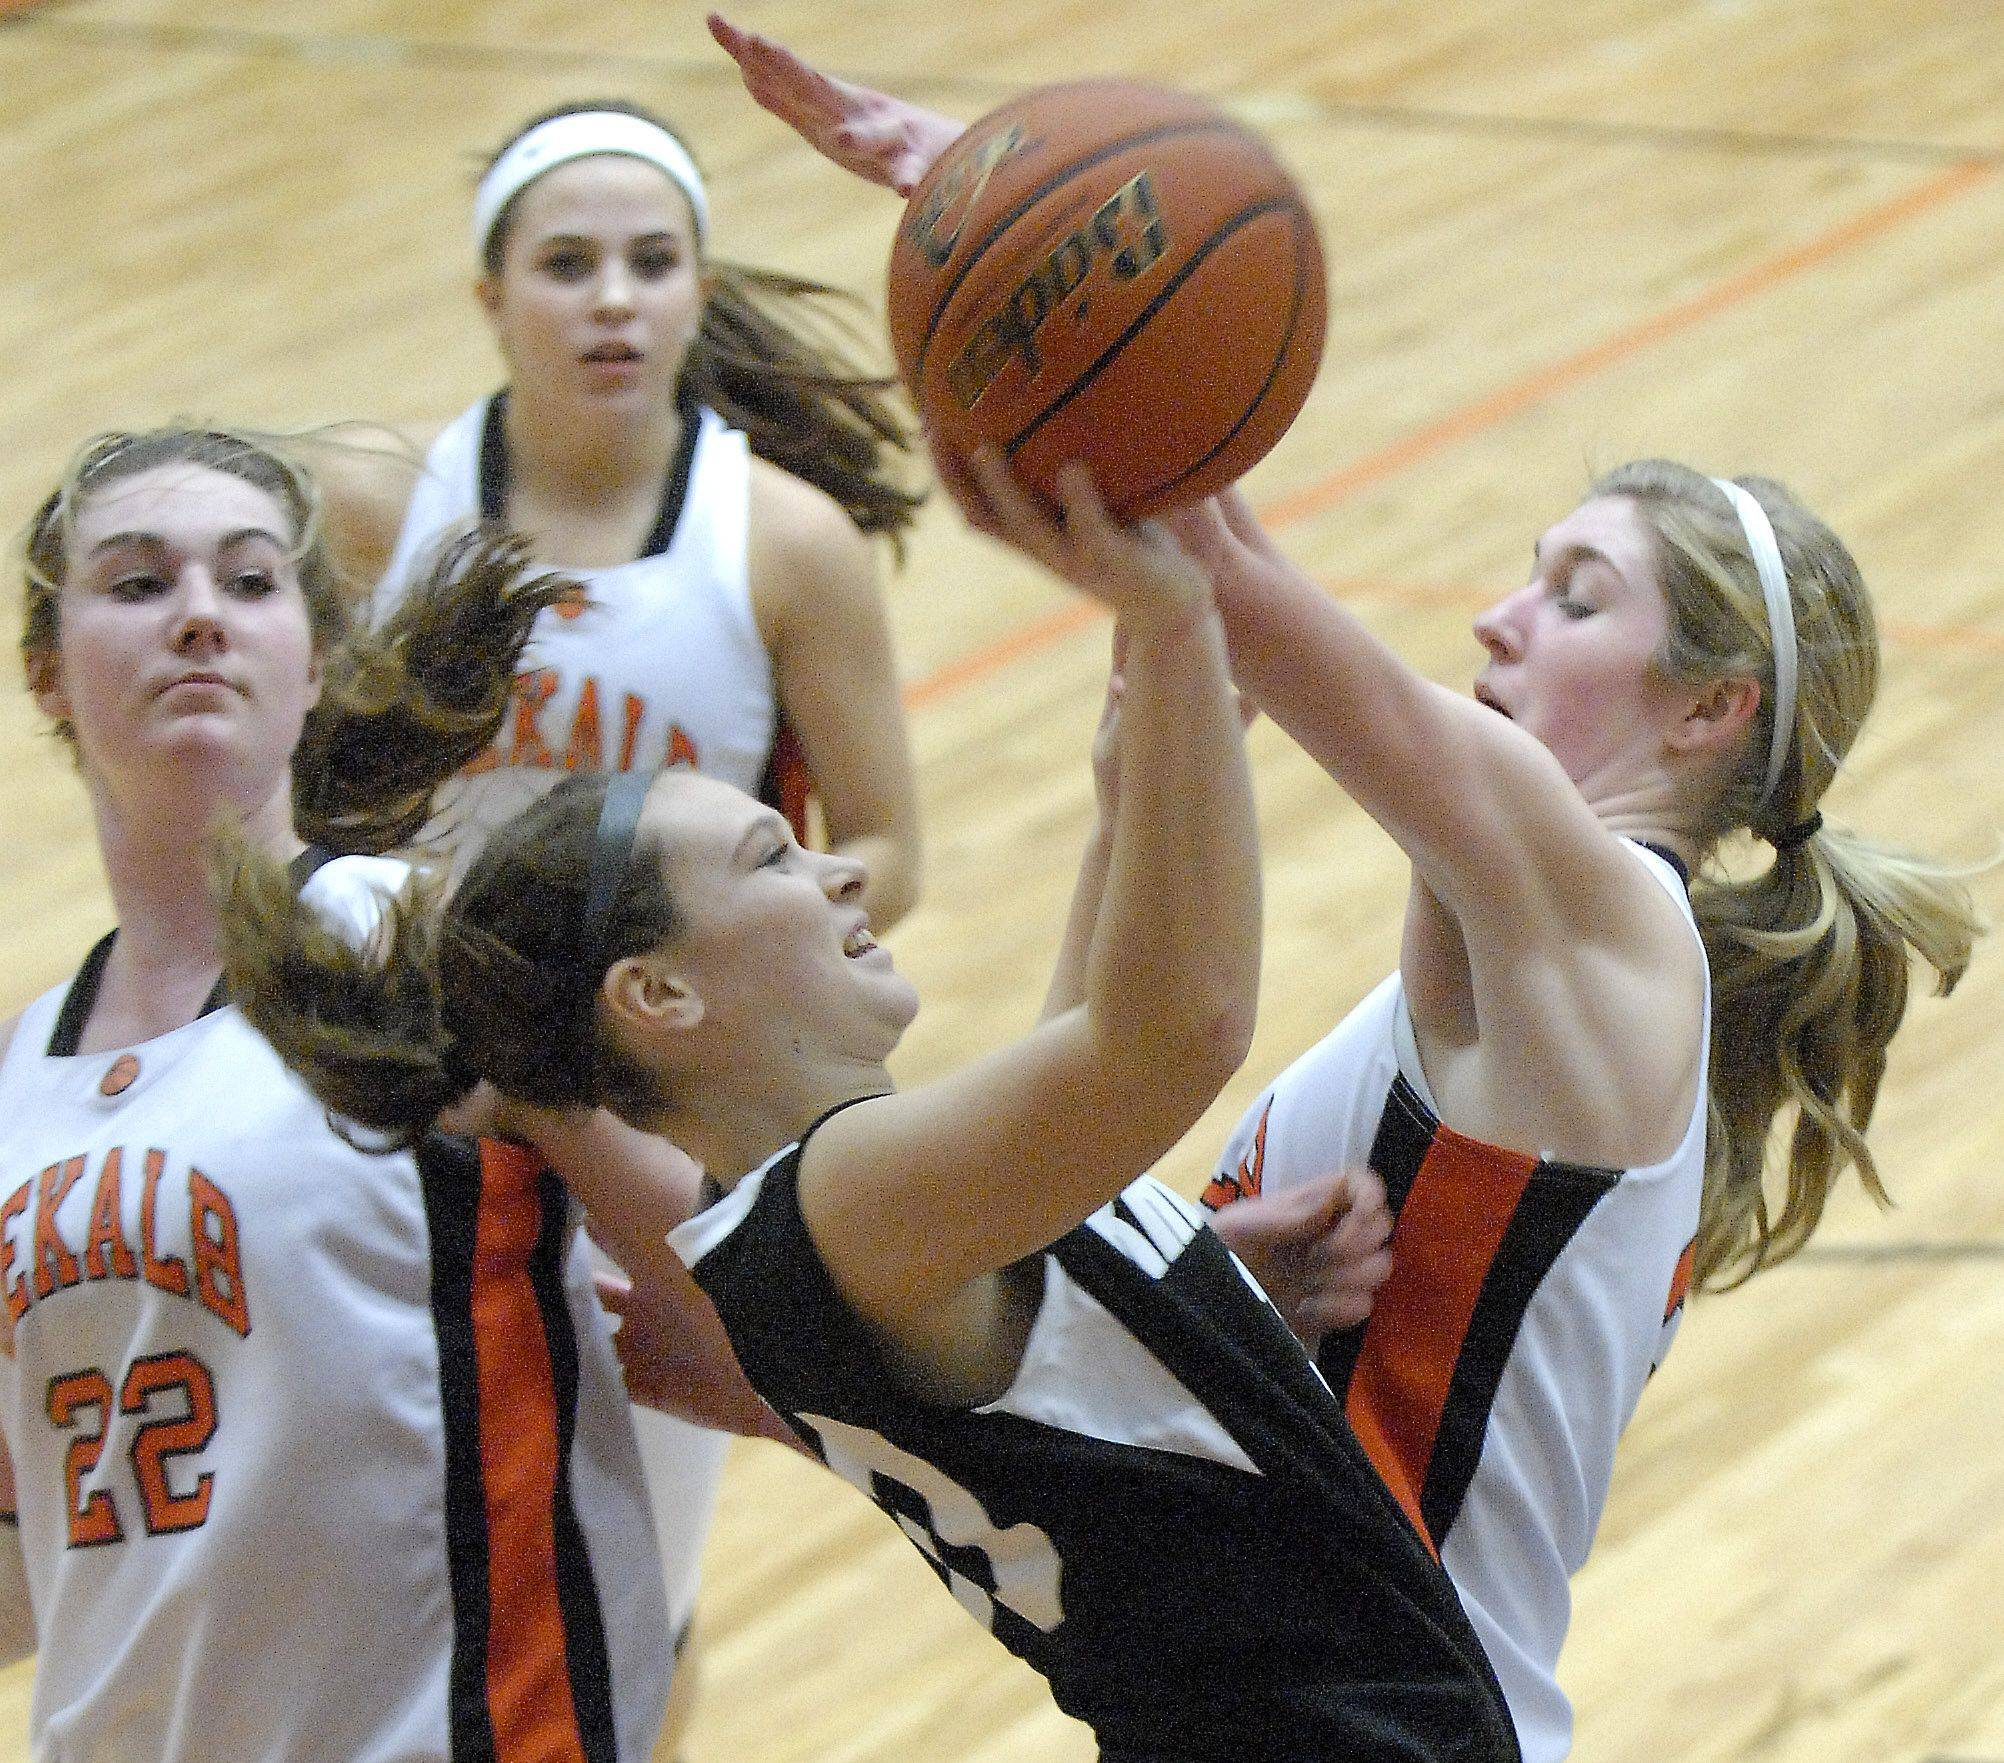 Images from the Kaneland vs. Dekalb girls basketball game Tuesday, January 31, 2012.